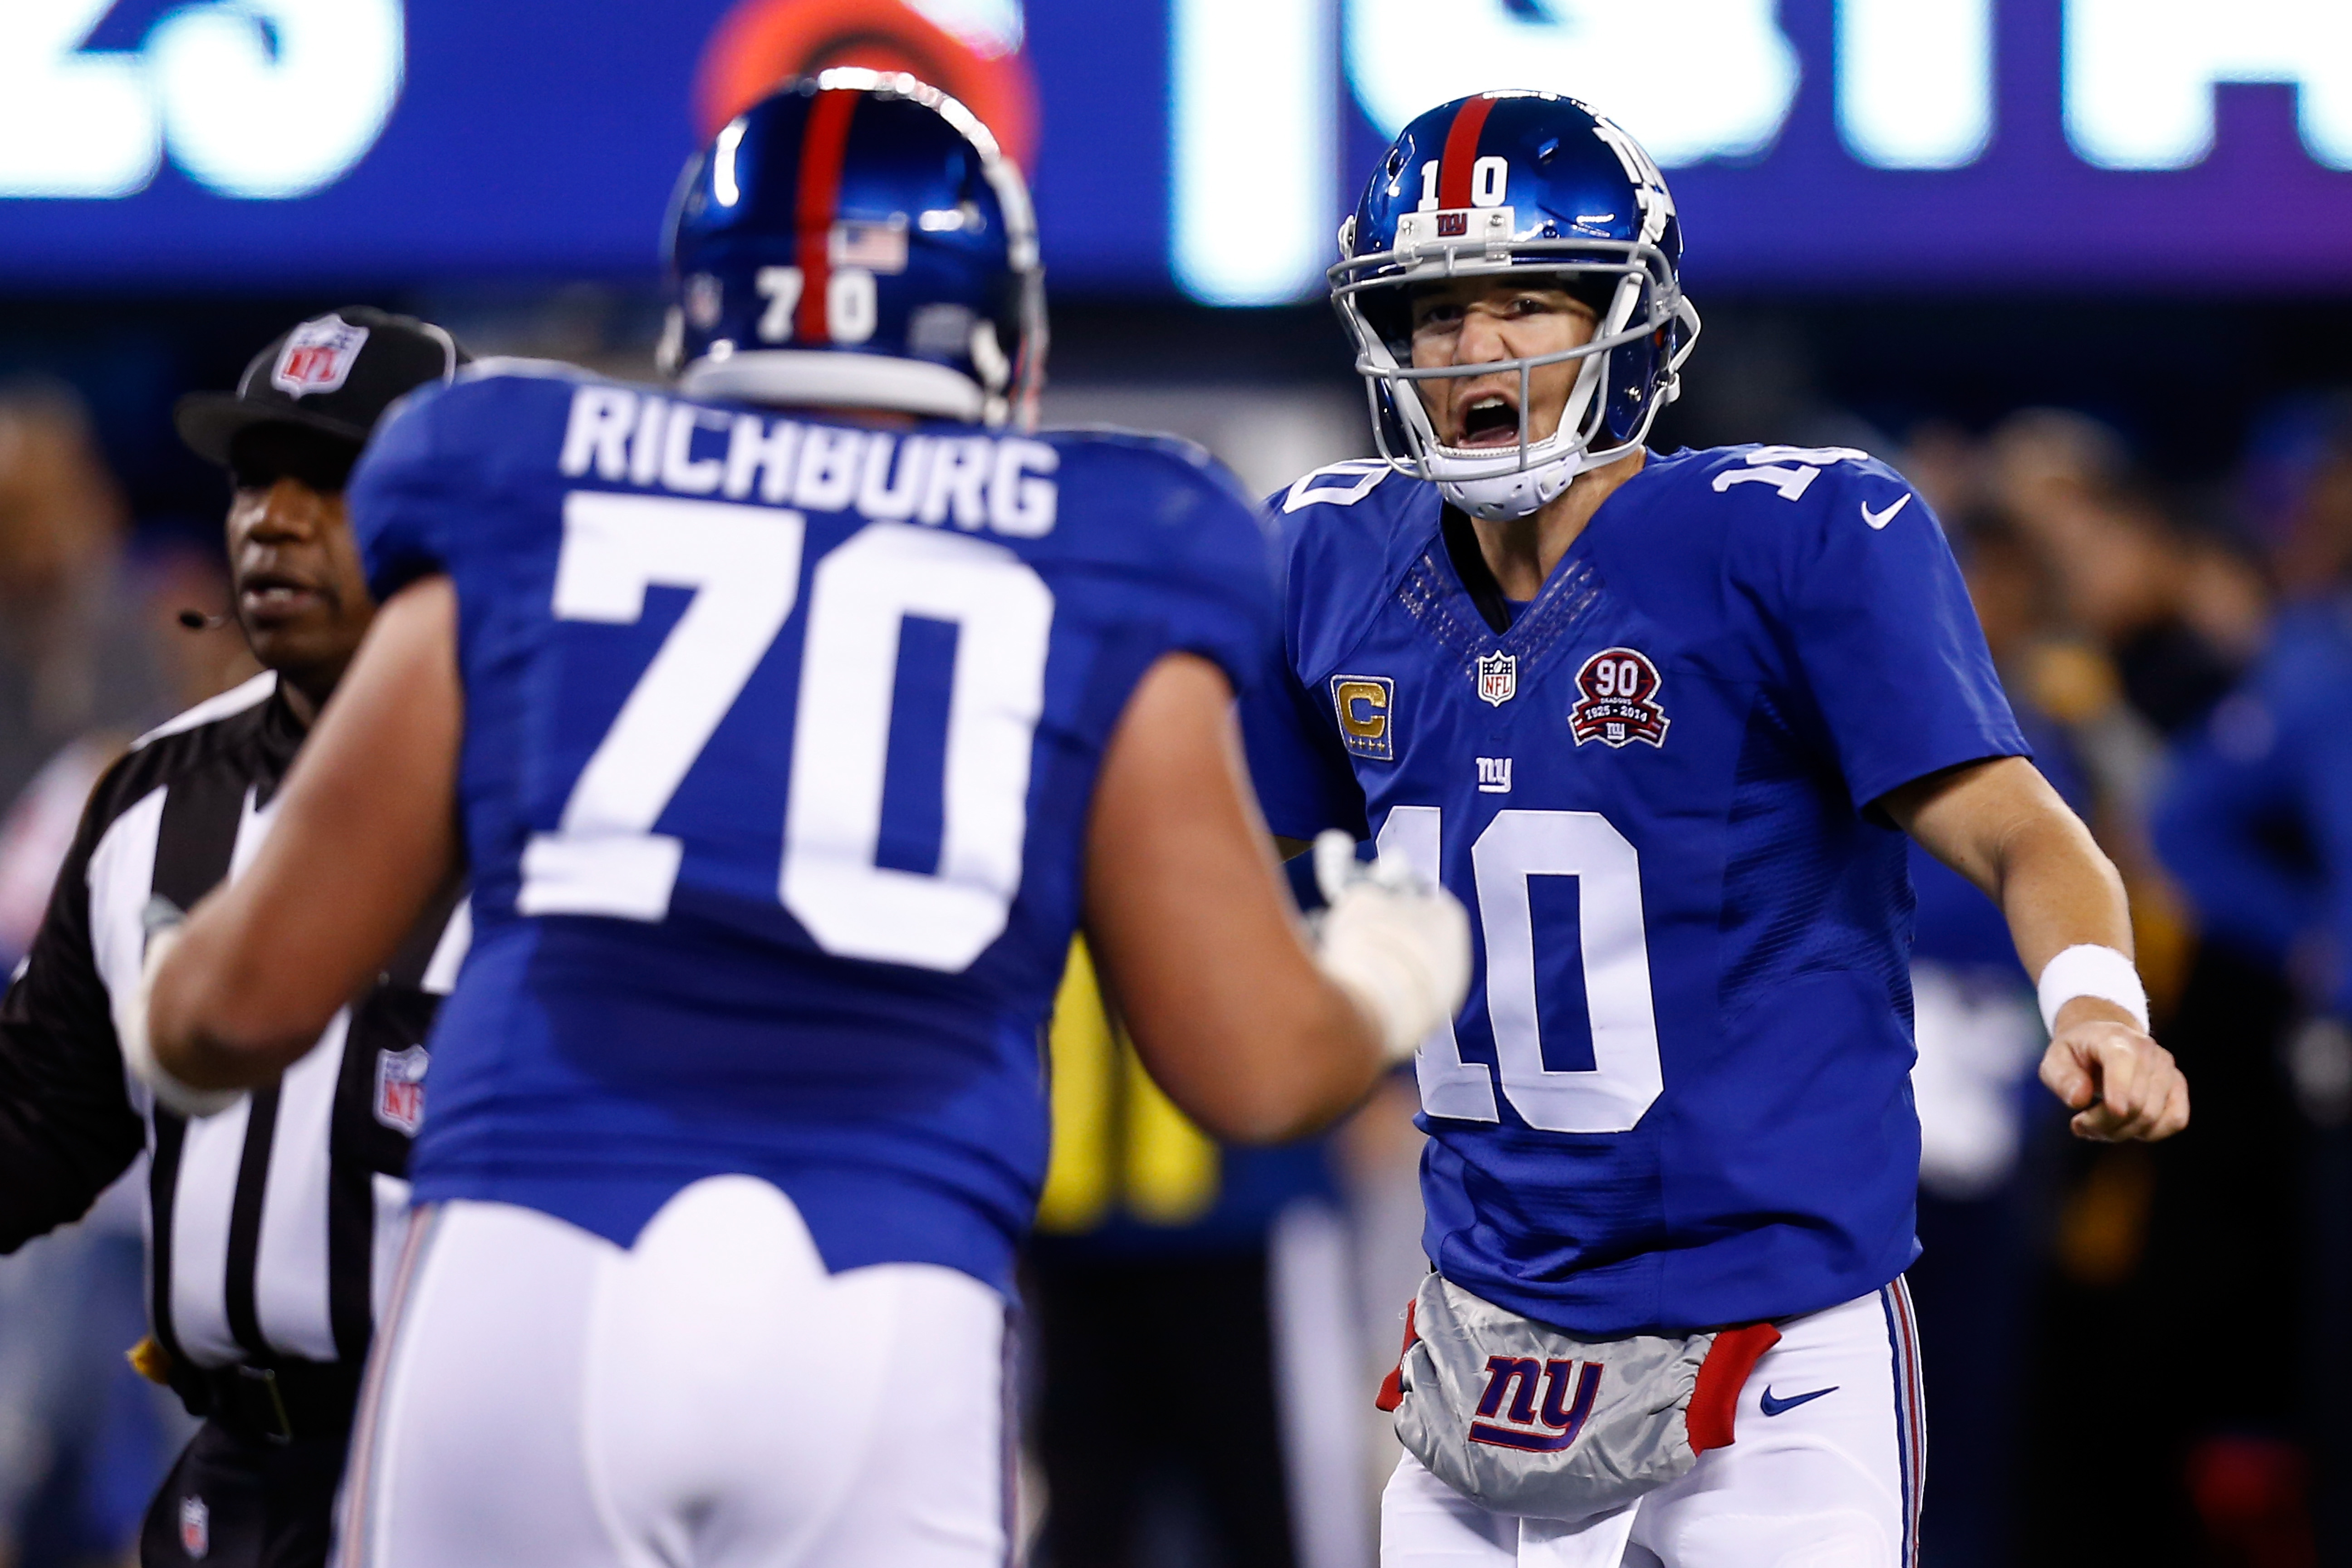 Weston Richburg (foreground) is expected to be benched on Sunday